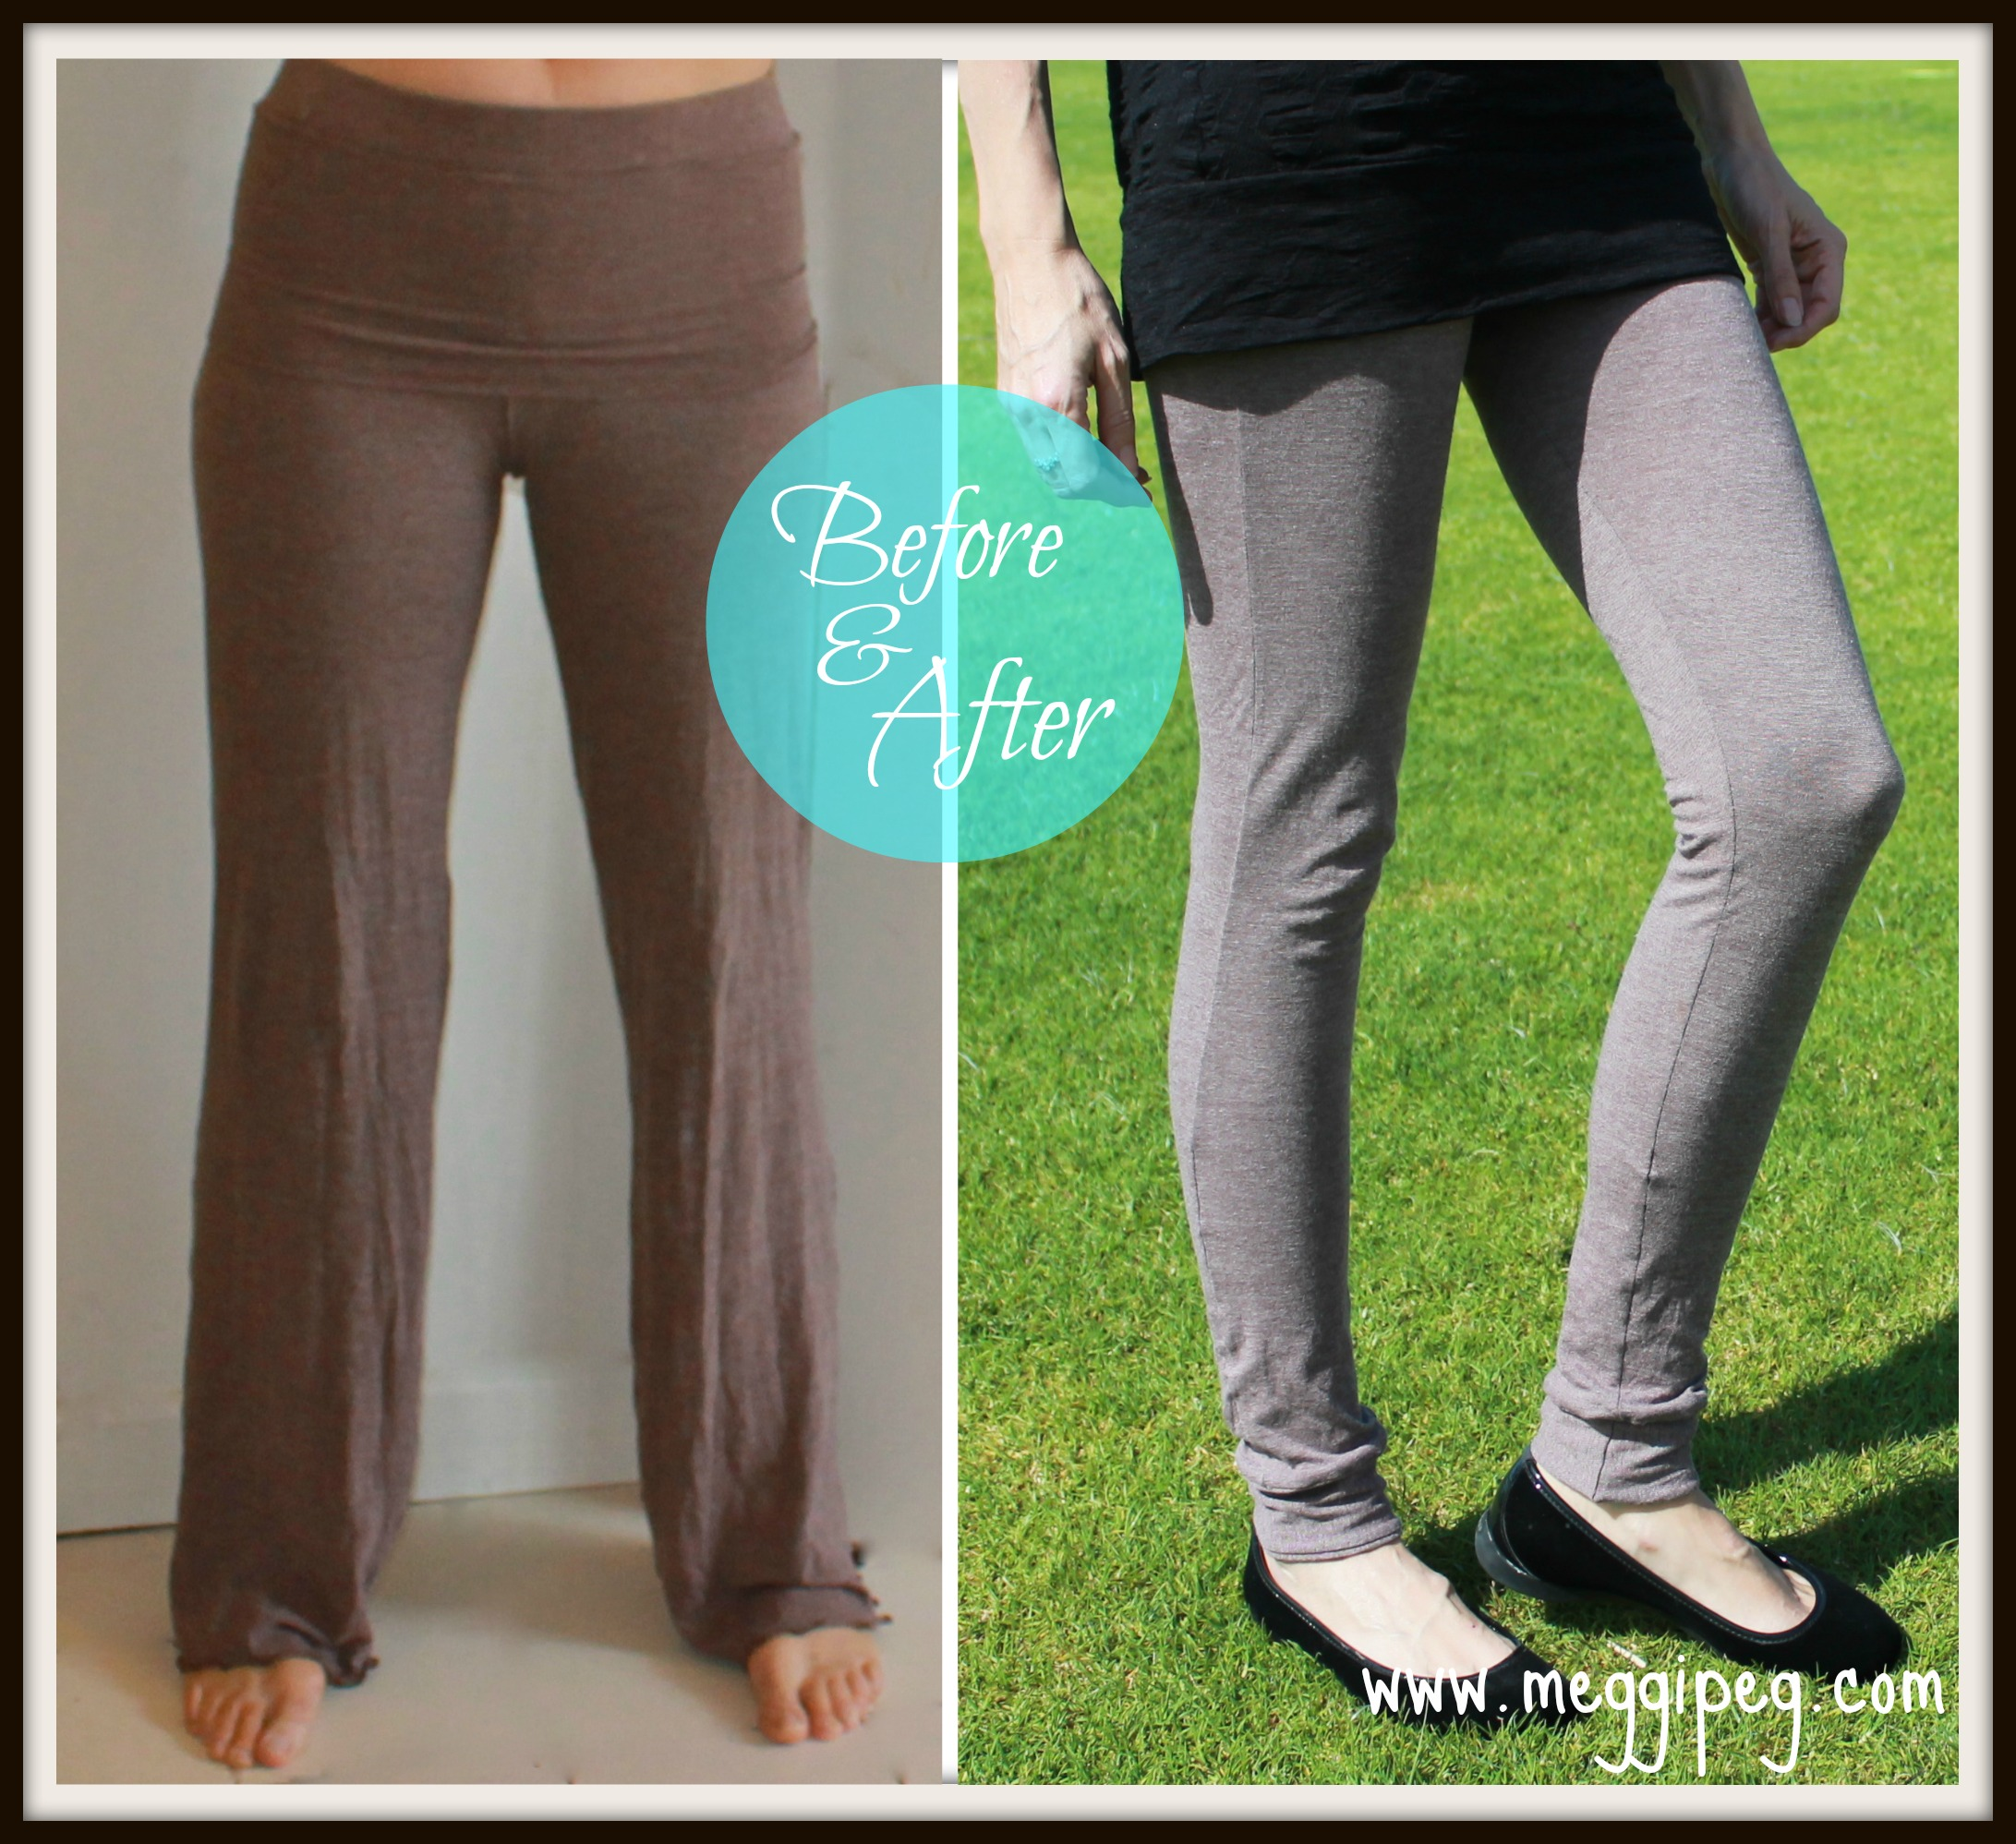 Refashion Yoga Pants Into Leggings With Cuffs